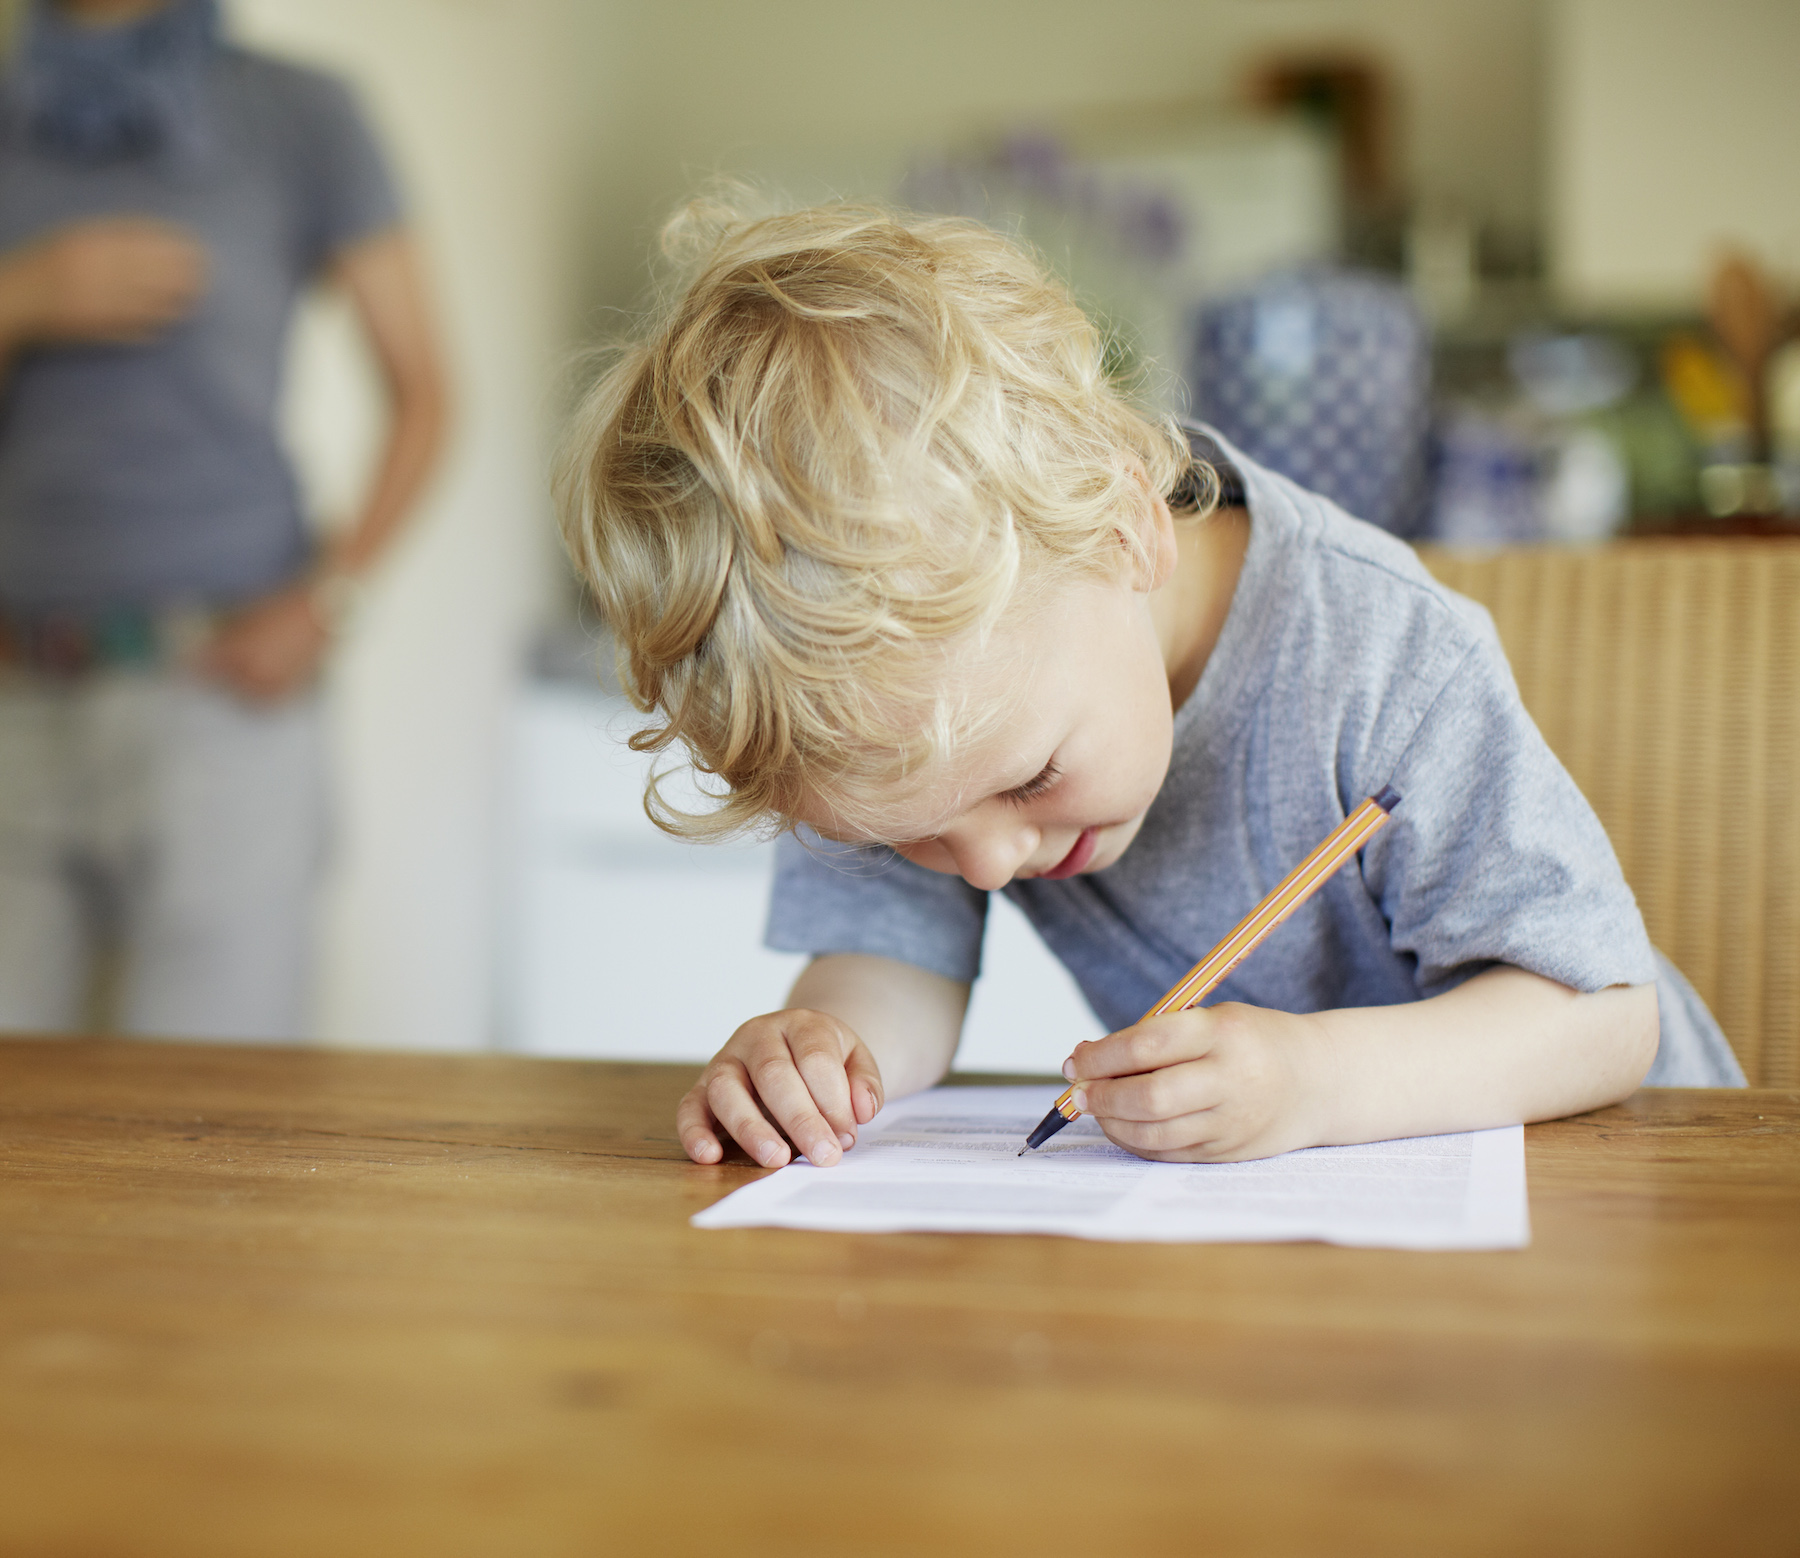 Boy writing checklist with pencil and paper